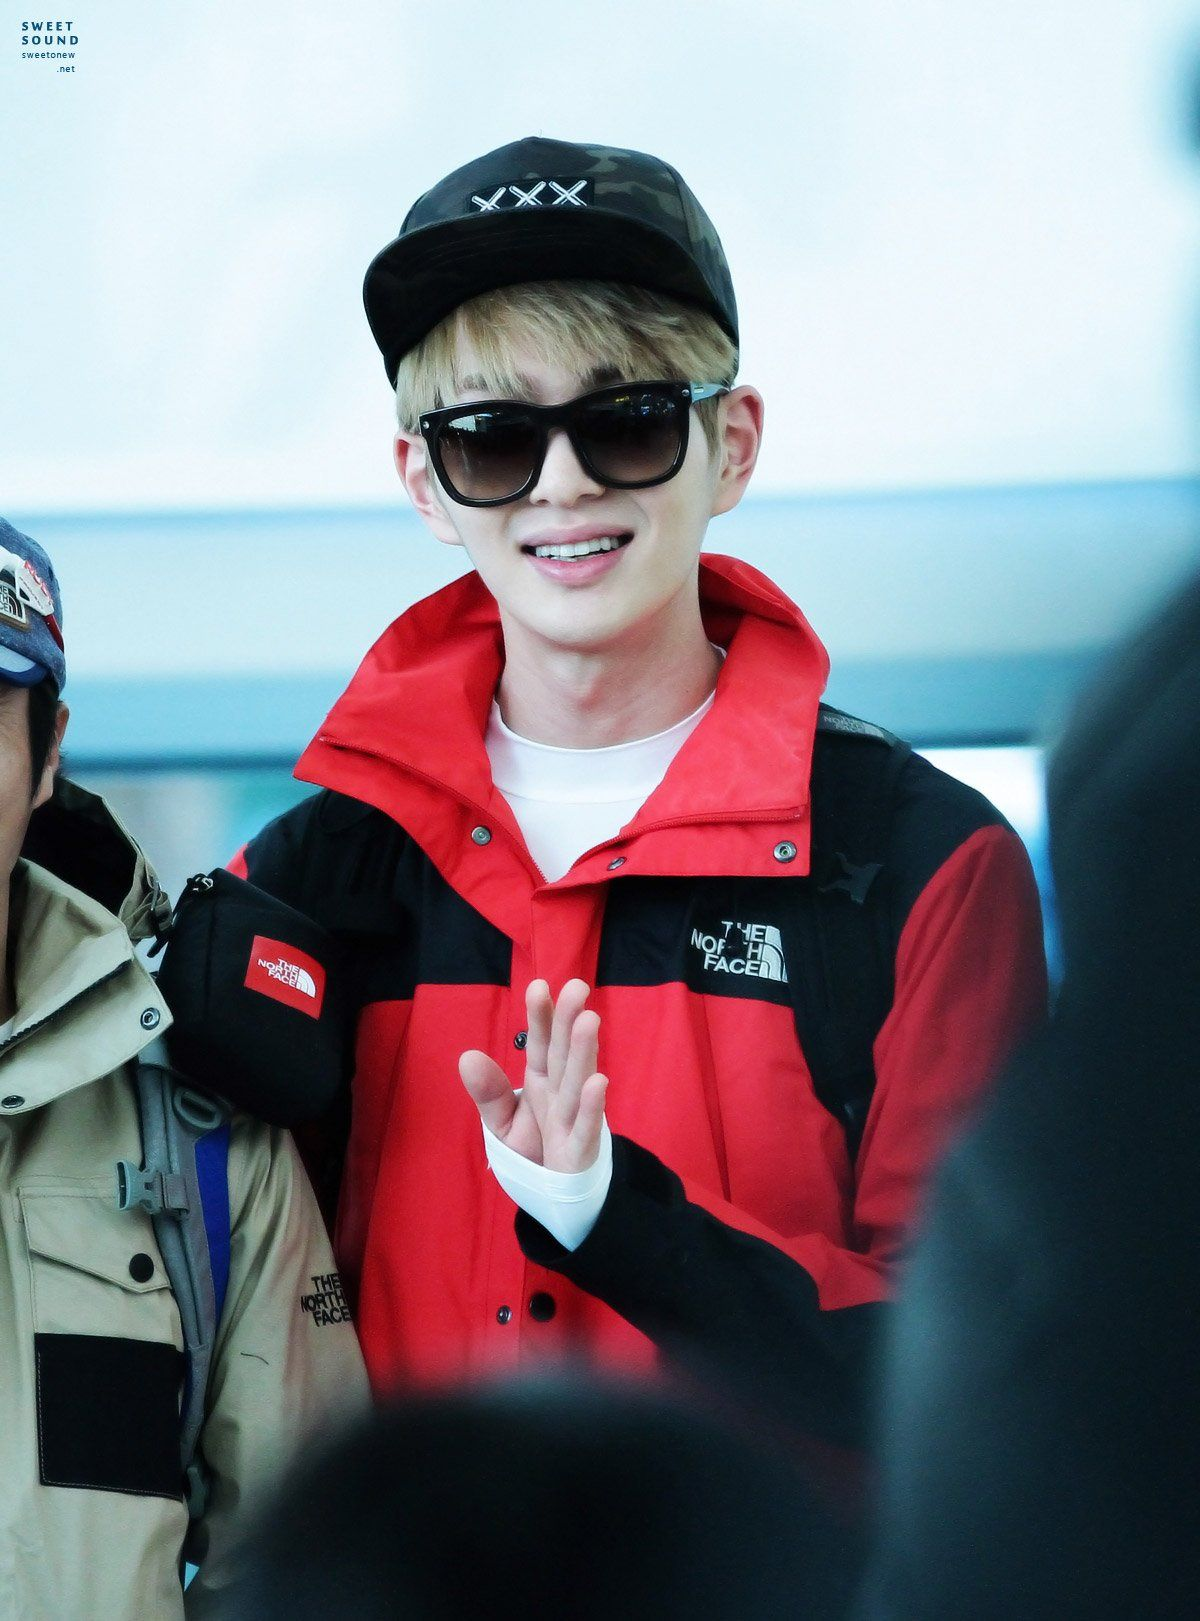 Onew ' Incheon Airport ② ' // 140310